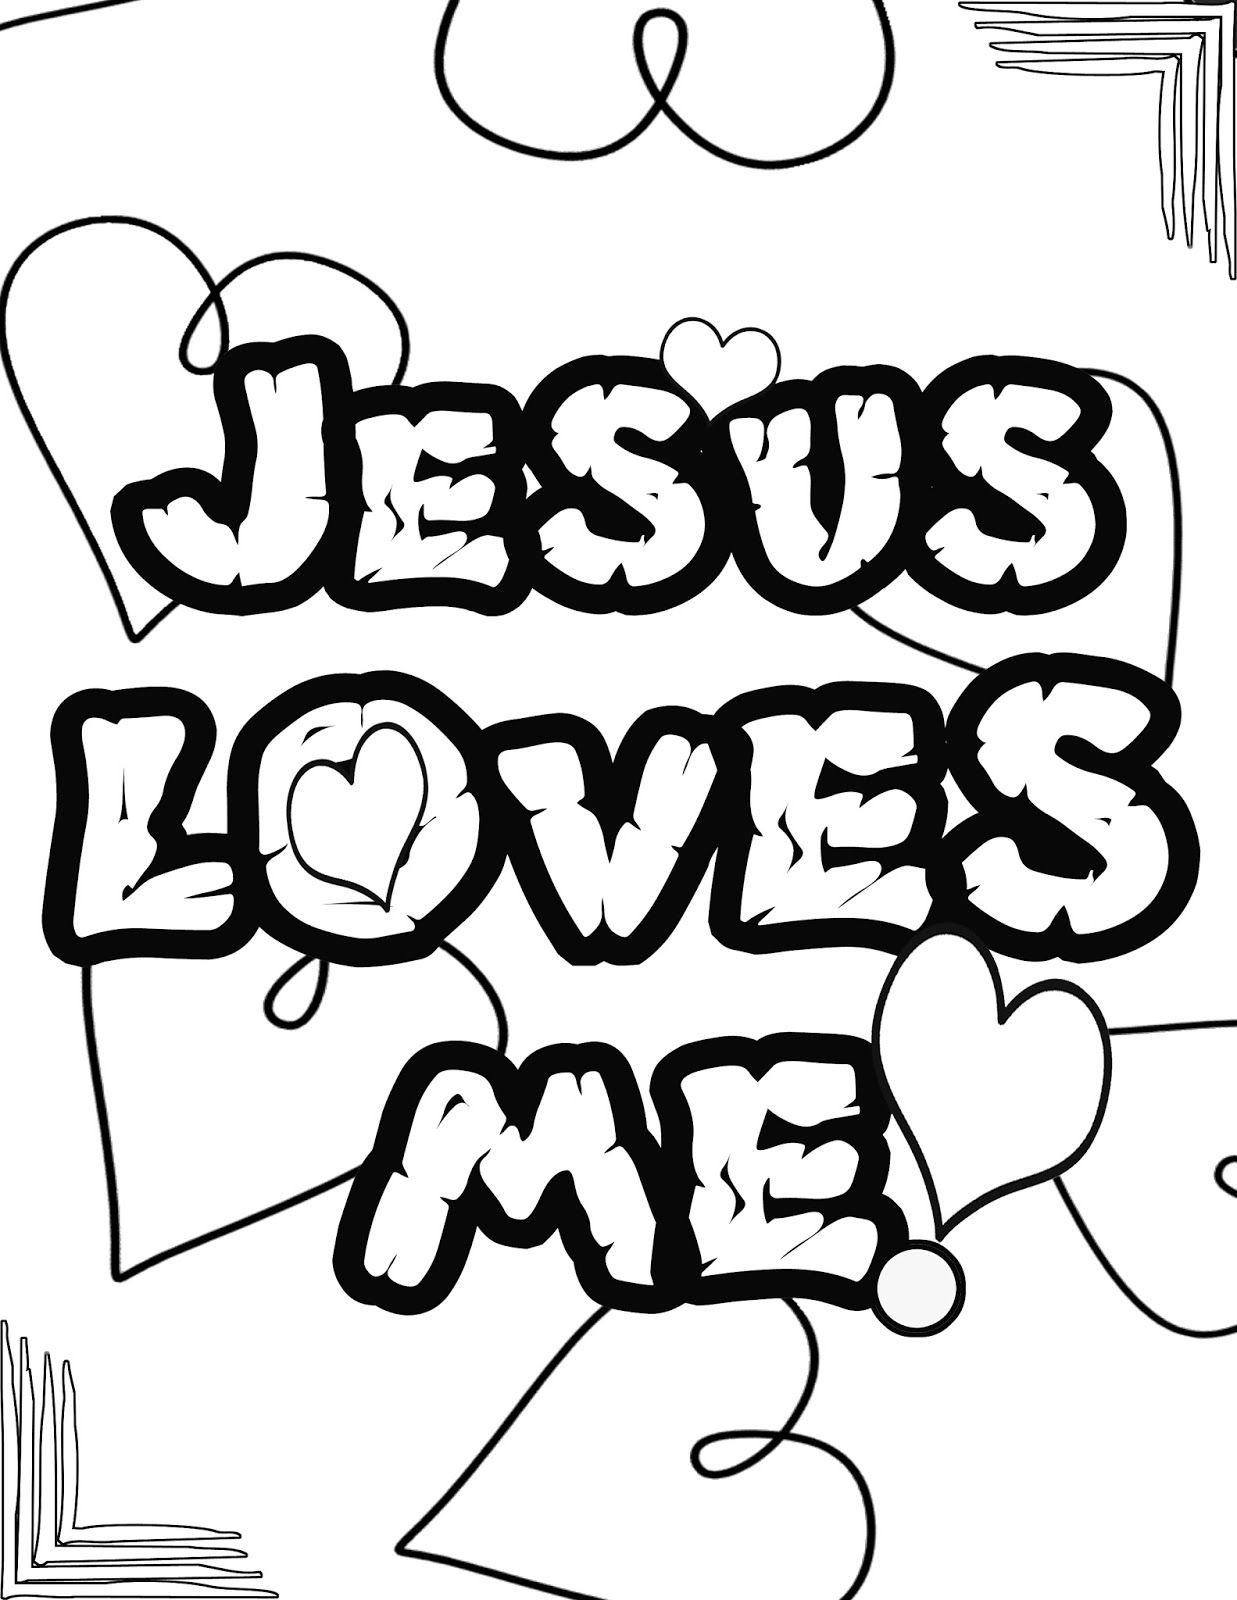 Luxurius Jesus Loves Me Coloring Pages Printables 64 For Your With Jesus Loves Me Coloring Pages Jesus Coloring Pages Love Coloring Pages Bible Coloring Pages